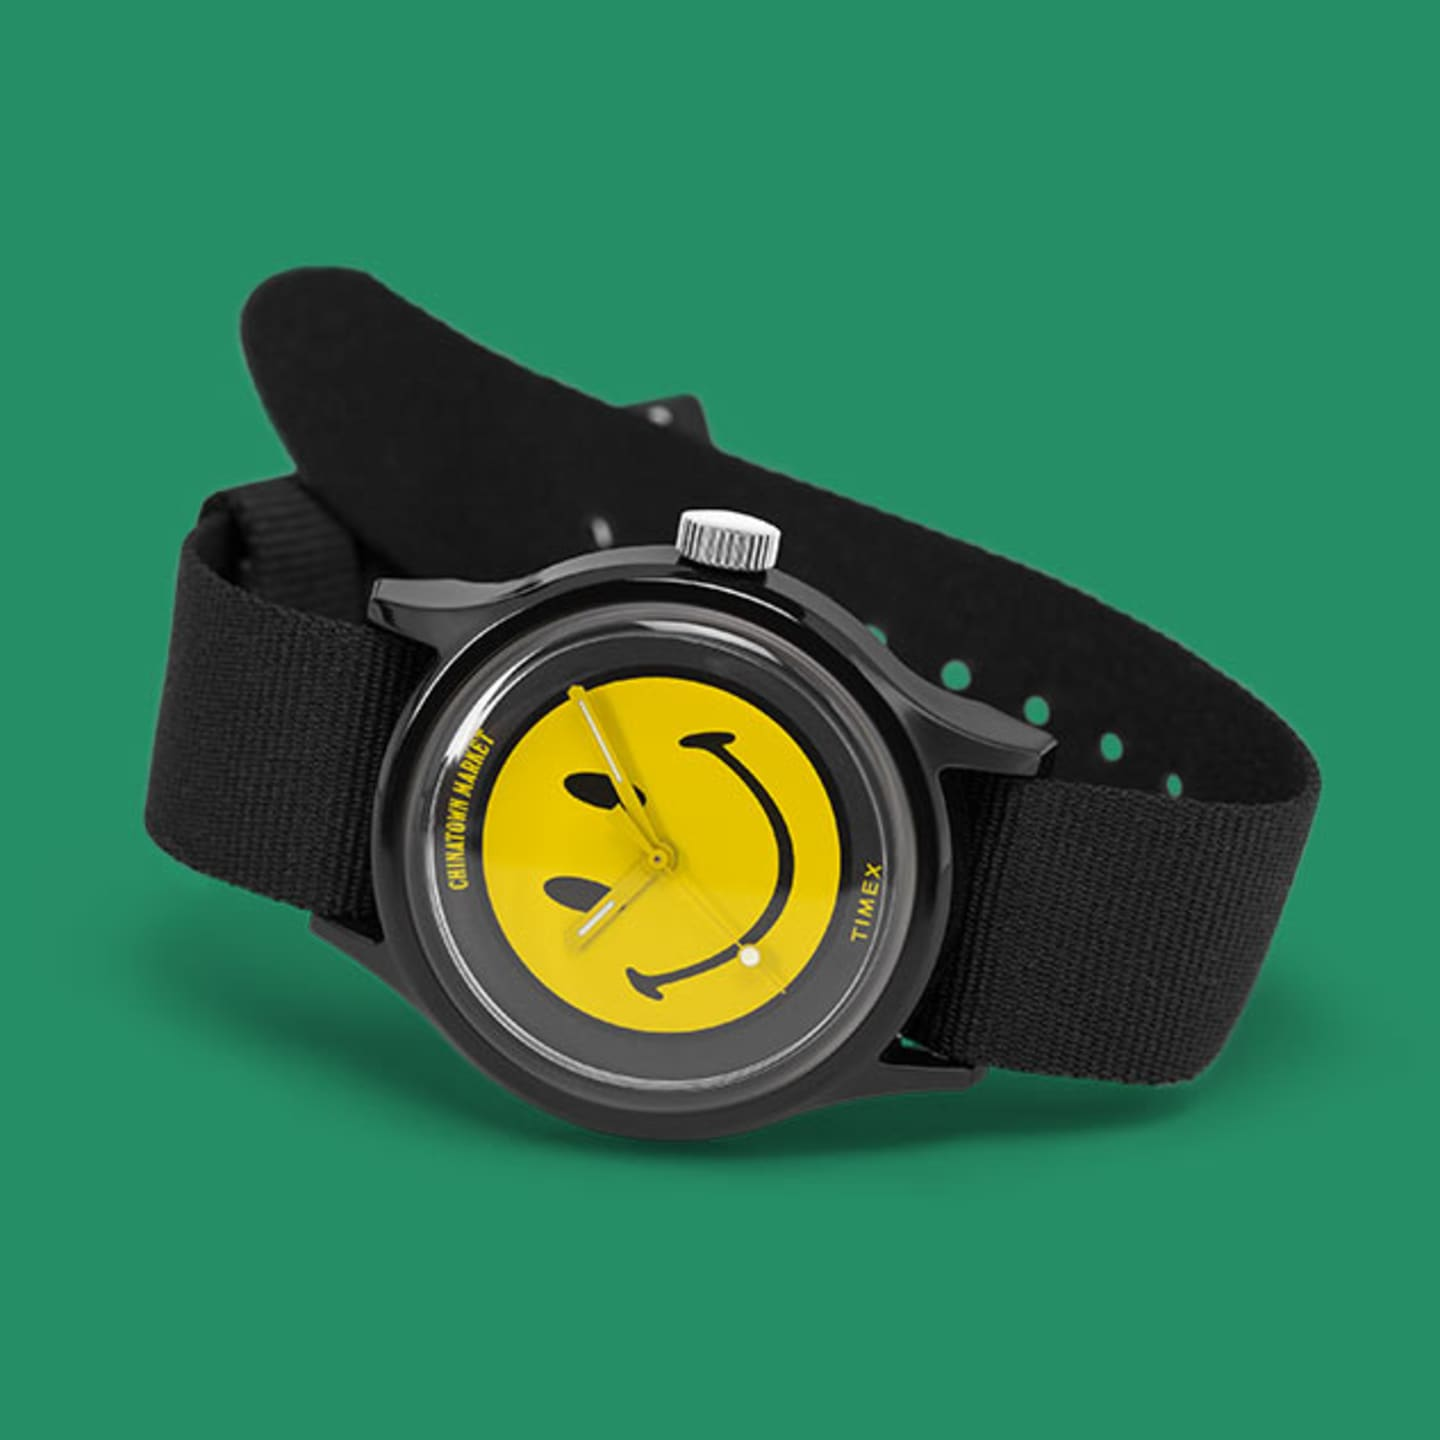 Black Chinatown Market Watch with Yellow Smiley Face Laying on Side